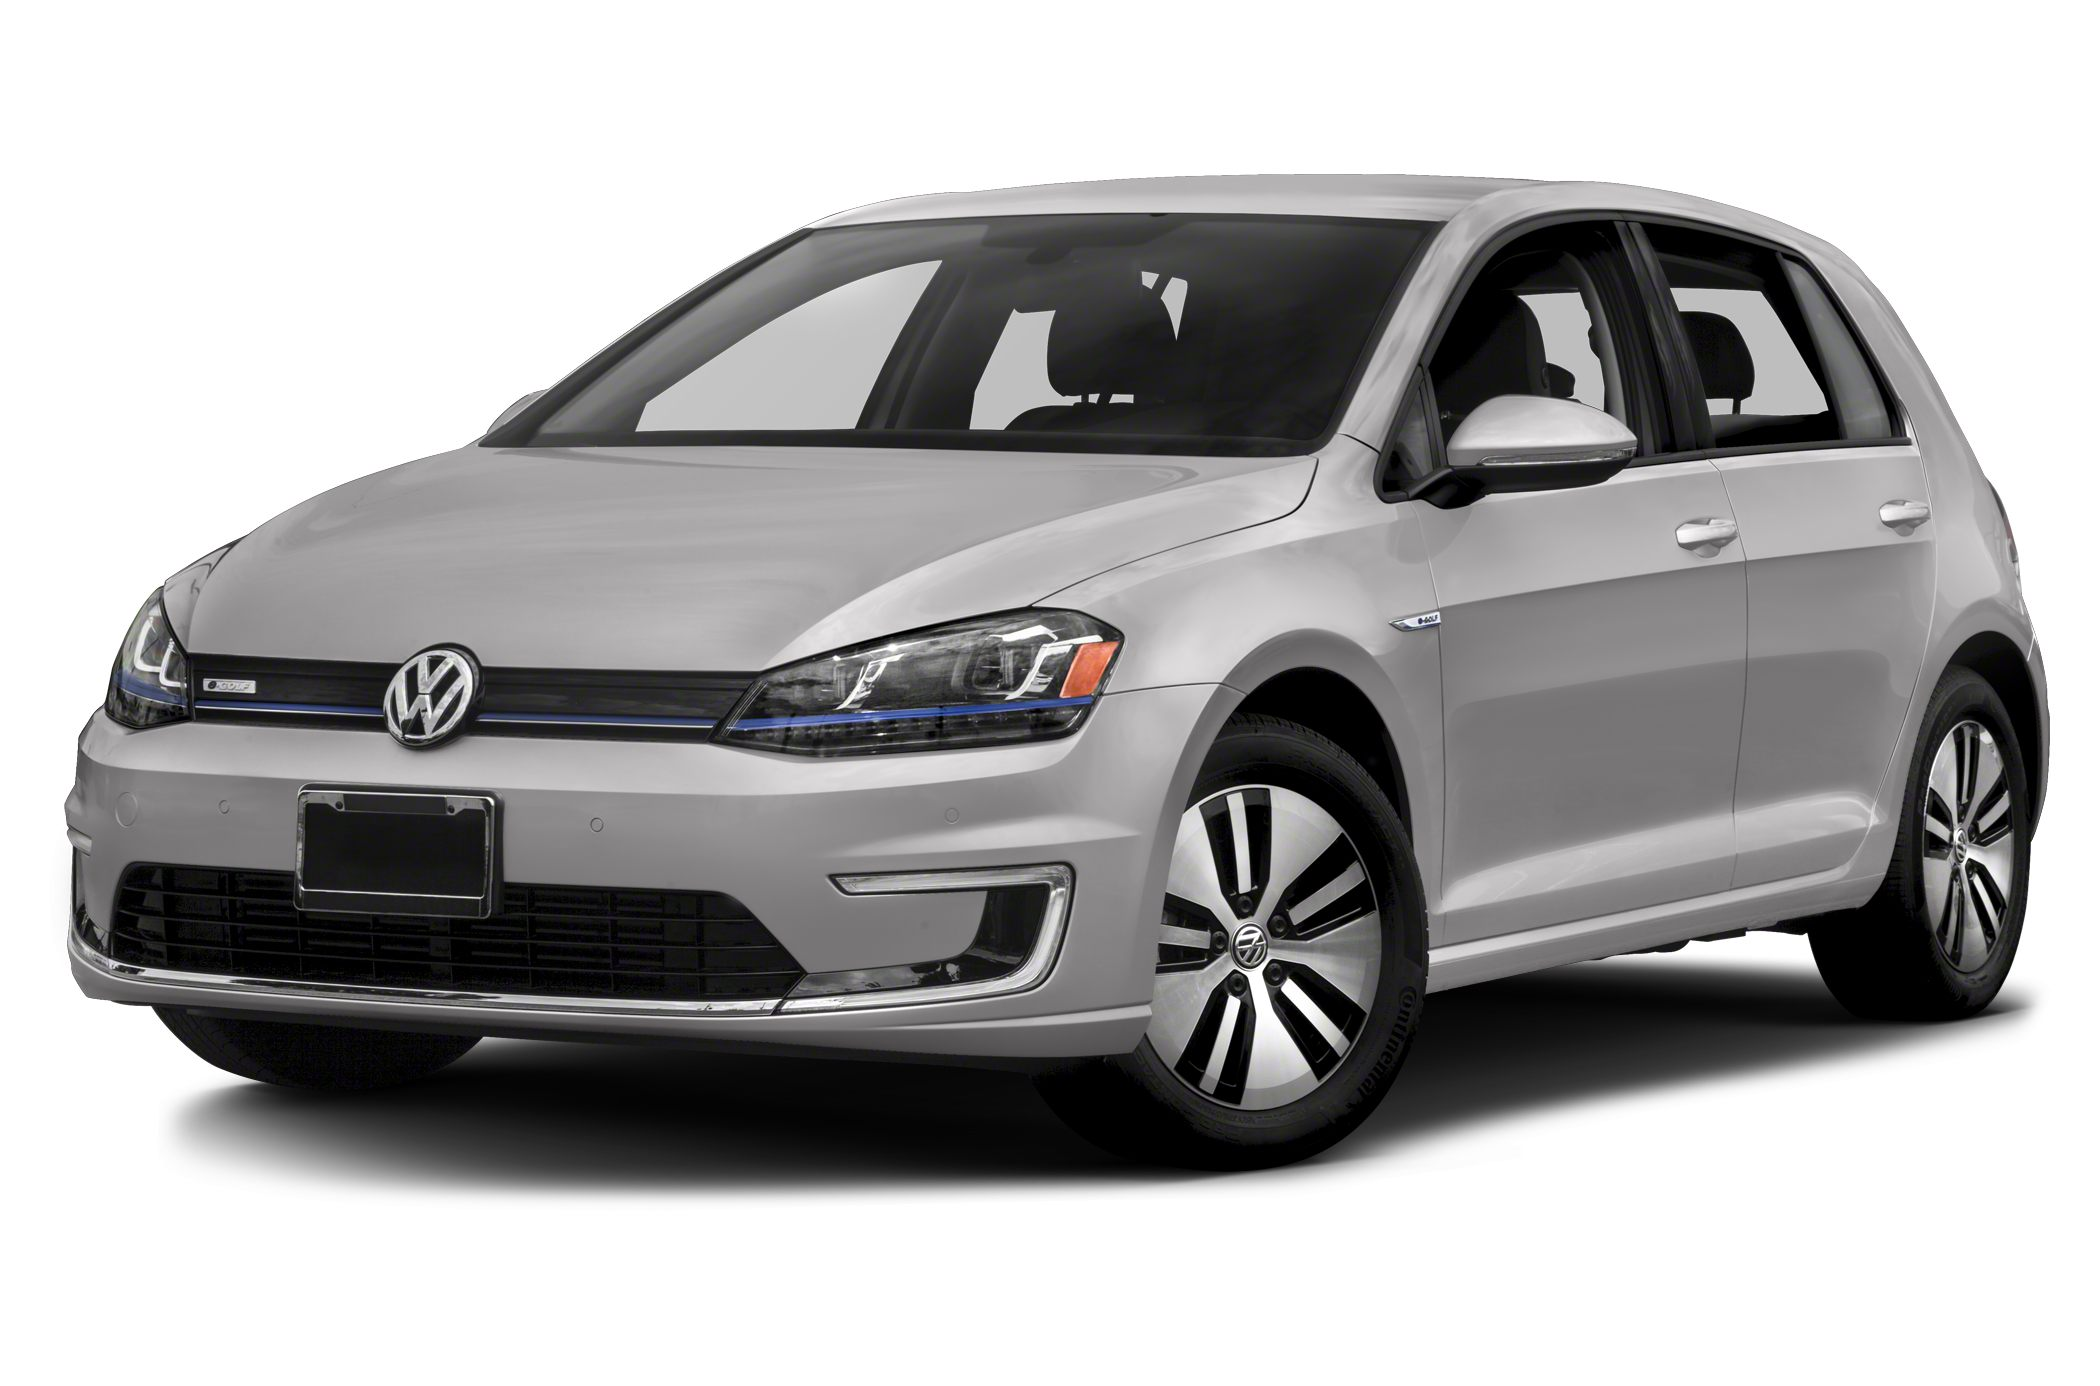 2015 Volkswagen E-Golf SEL Premium Hatchback for sale in Lawrence for $0 with 3 miles